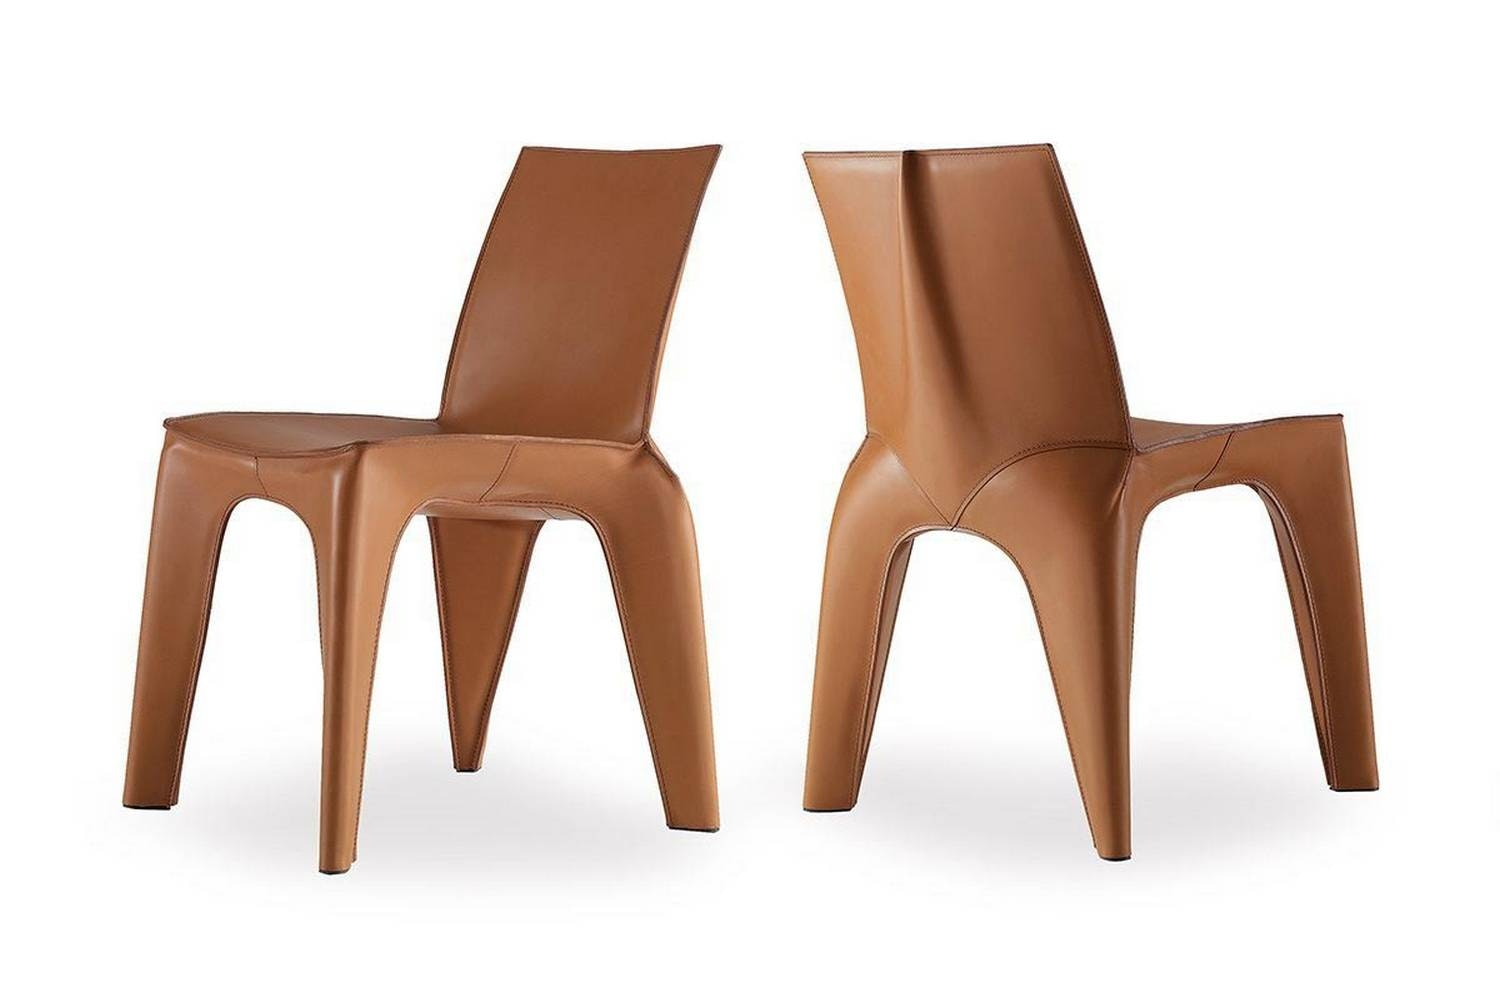 BB Chair by Riccardo Blumer and Matteo Borghi for Poliform